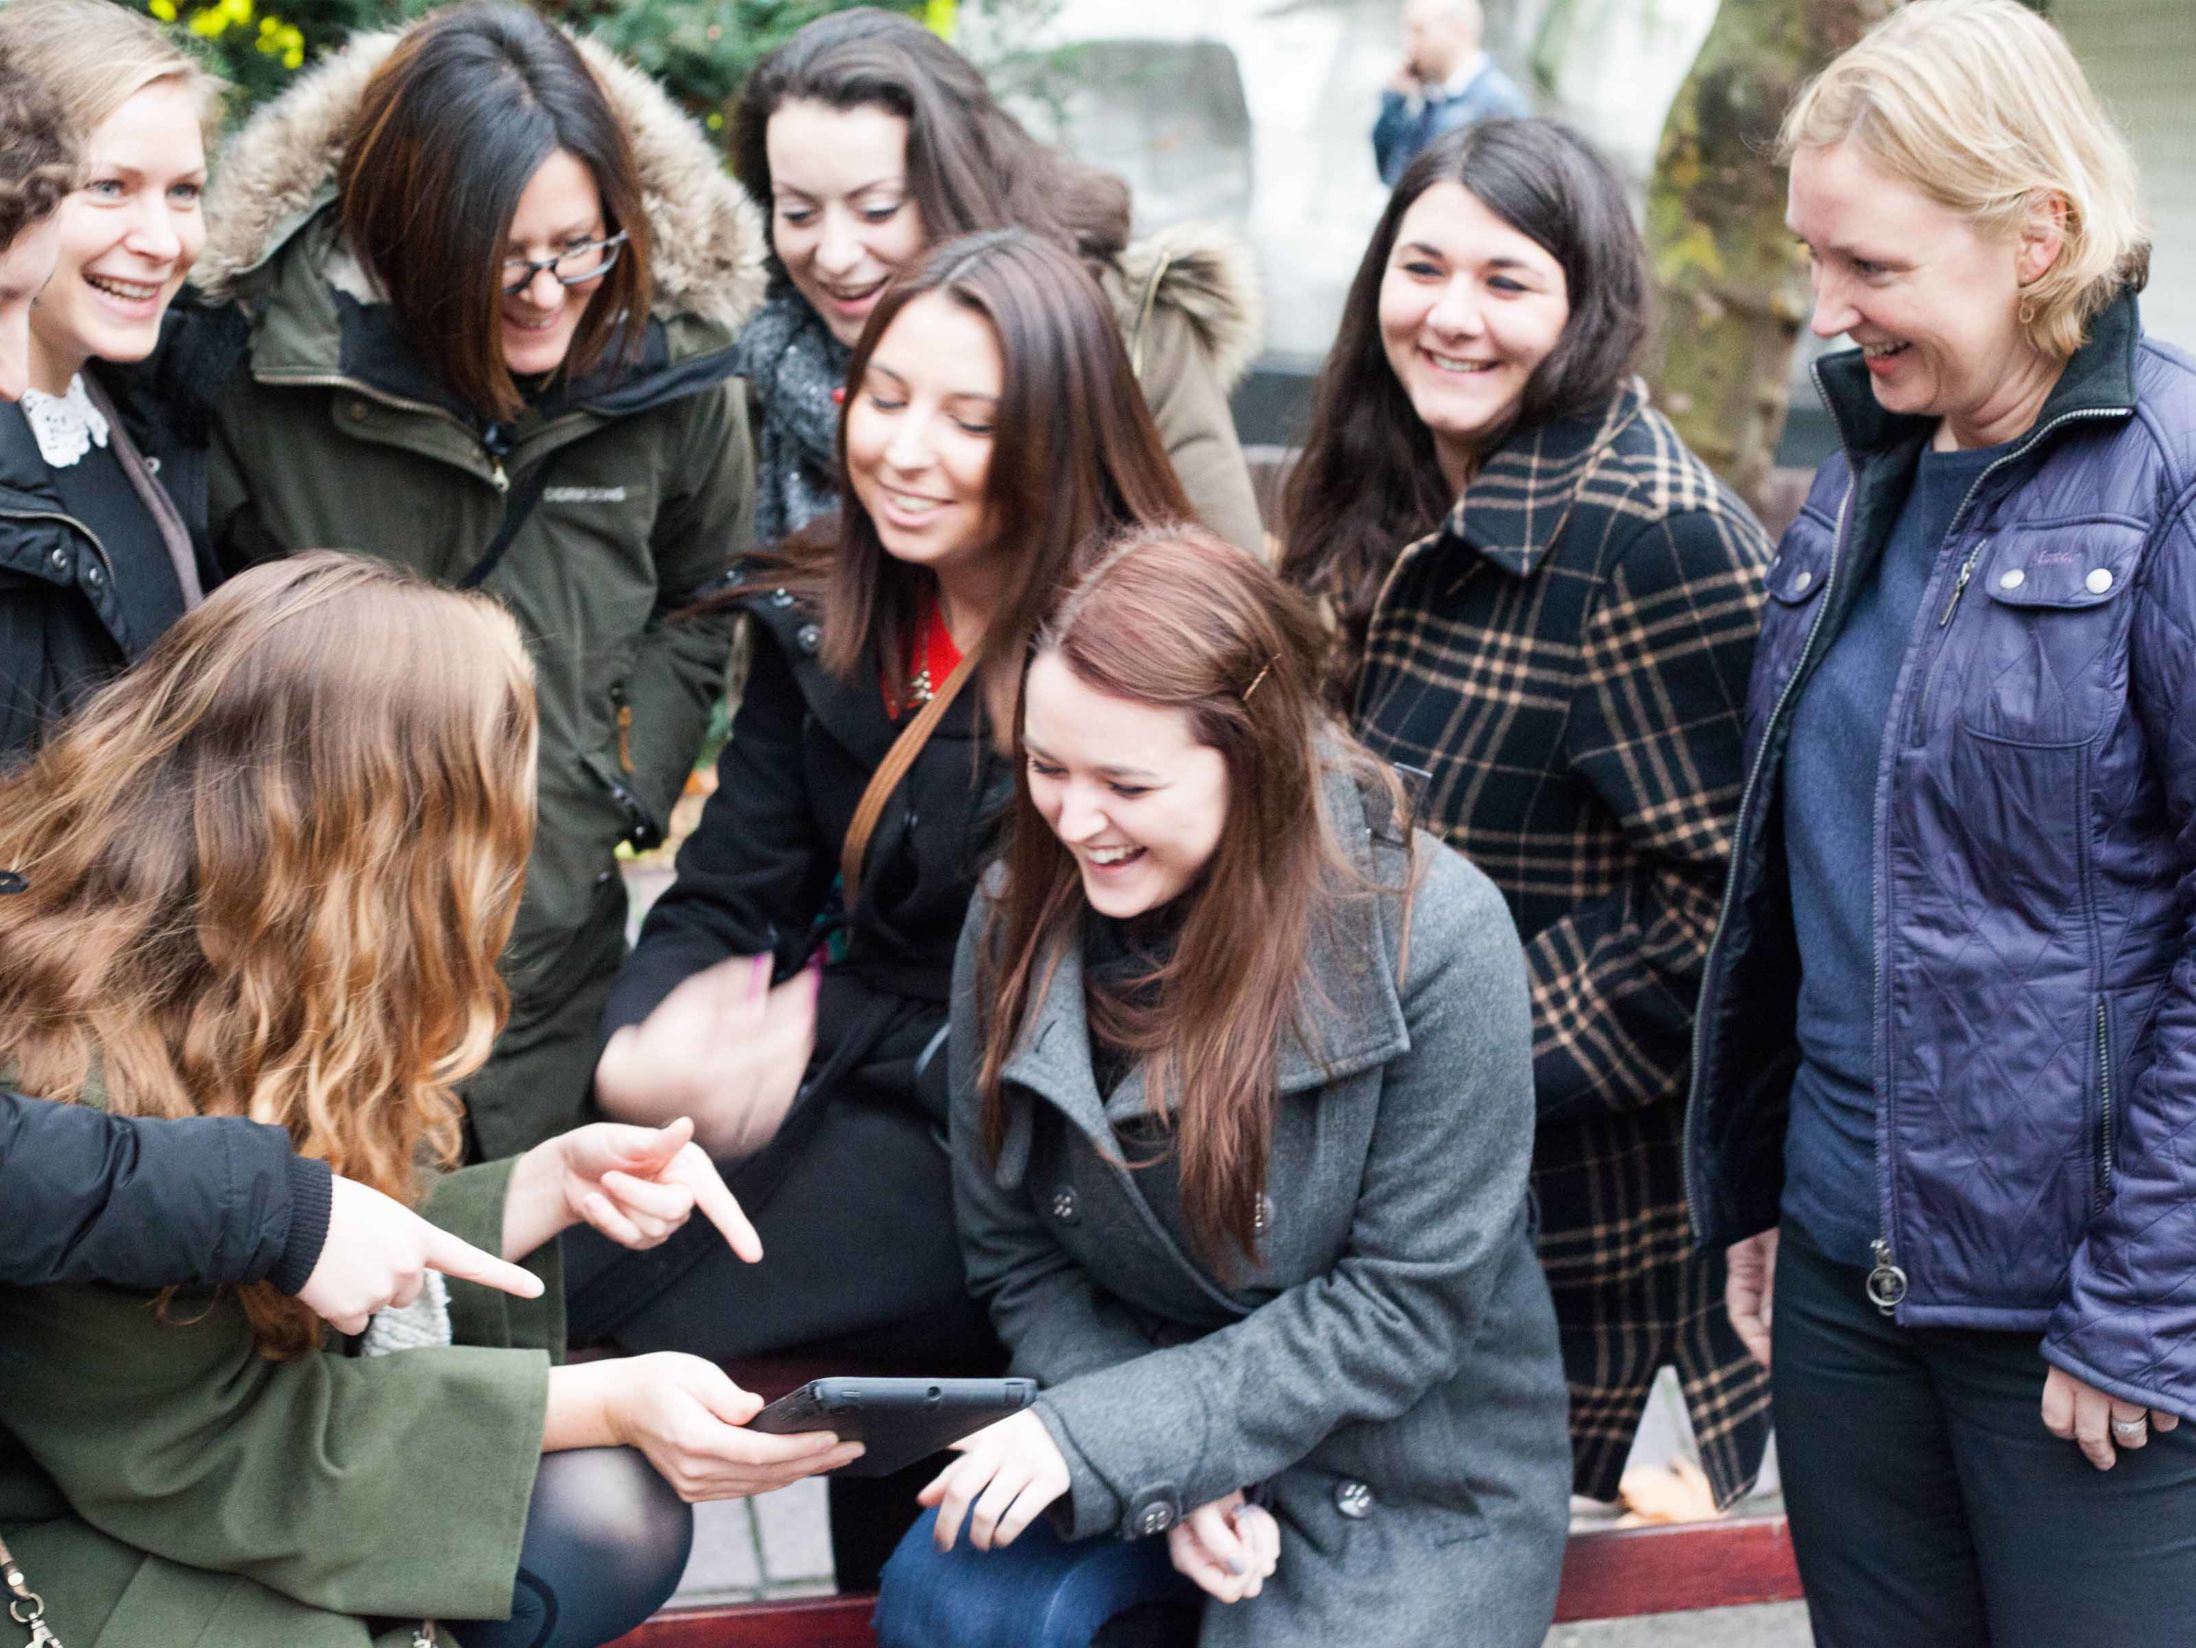 5 Hen Do Ideas - Treasure Hunts